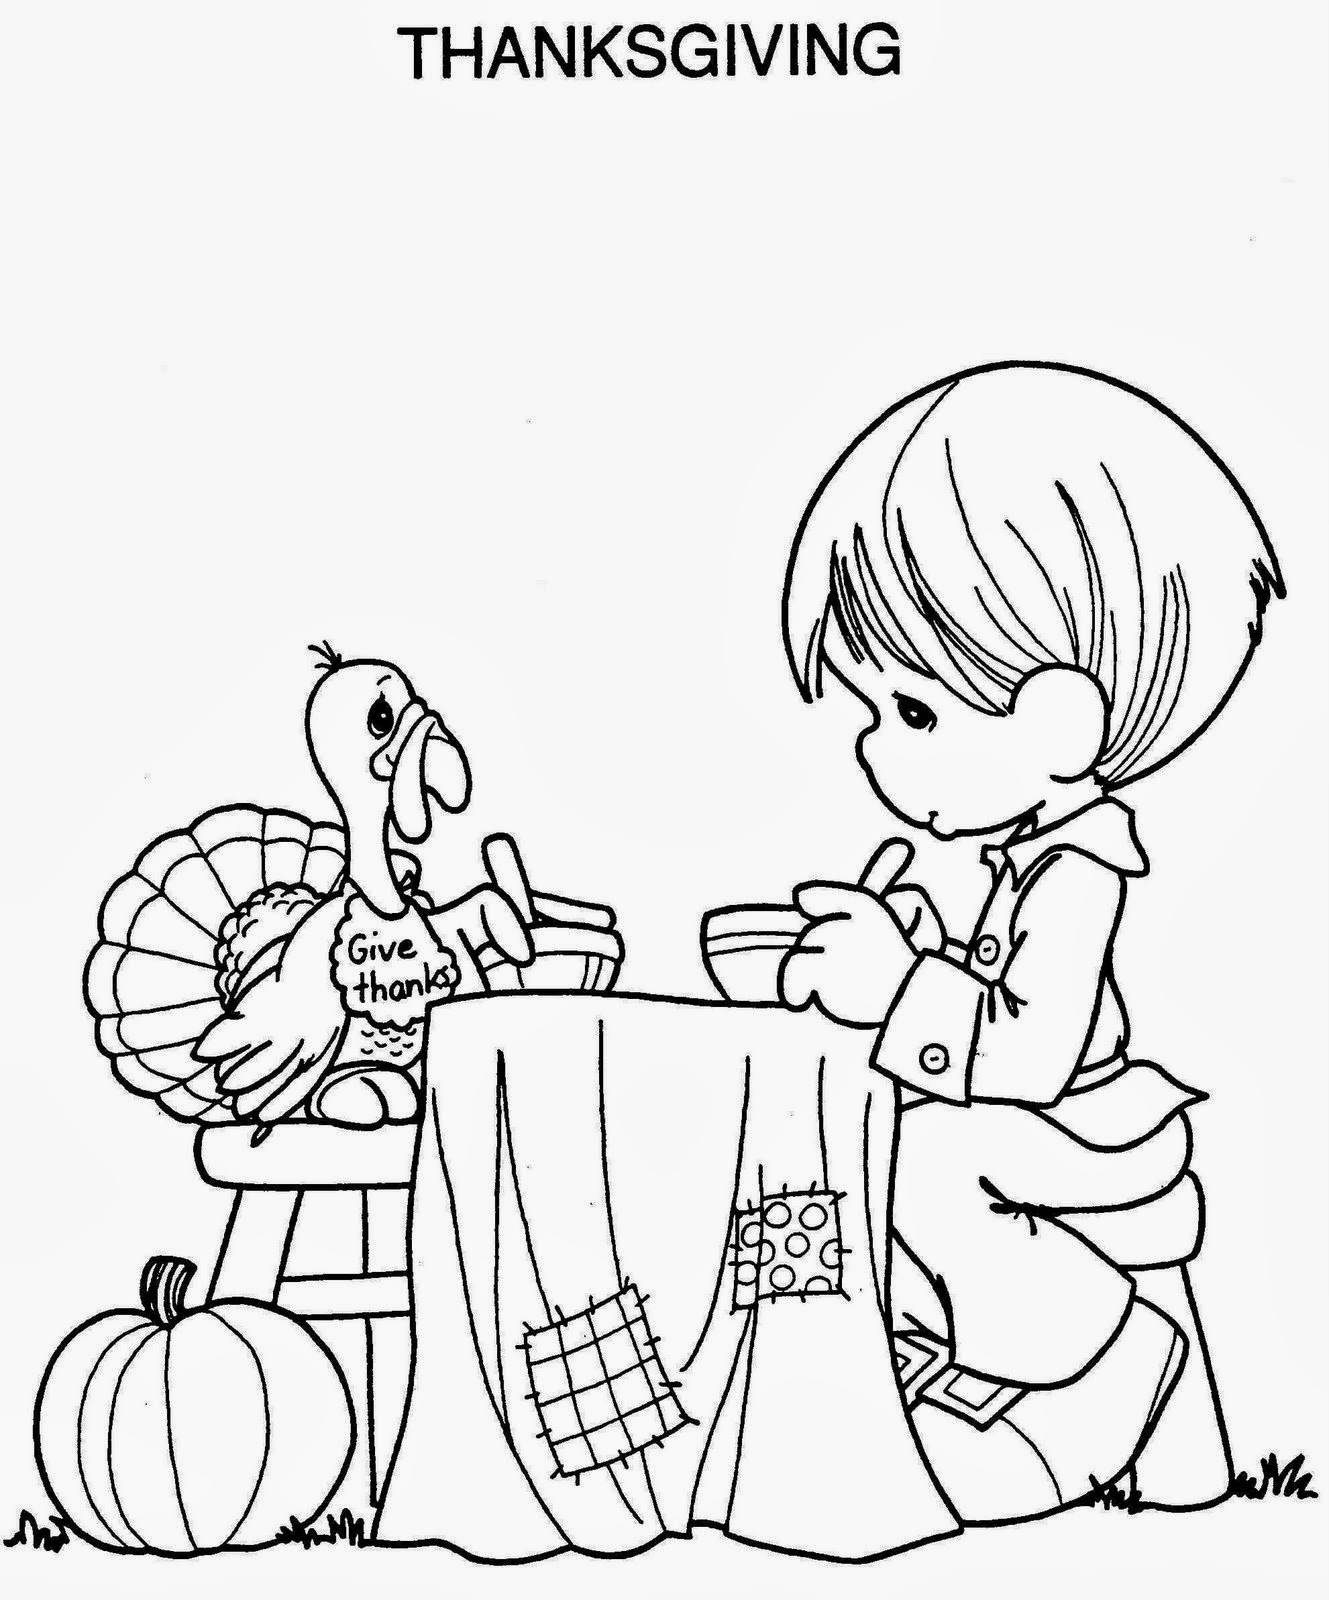 Thanksgiving day for coloring part 1 for Thanksgiving coloring pages printable free